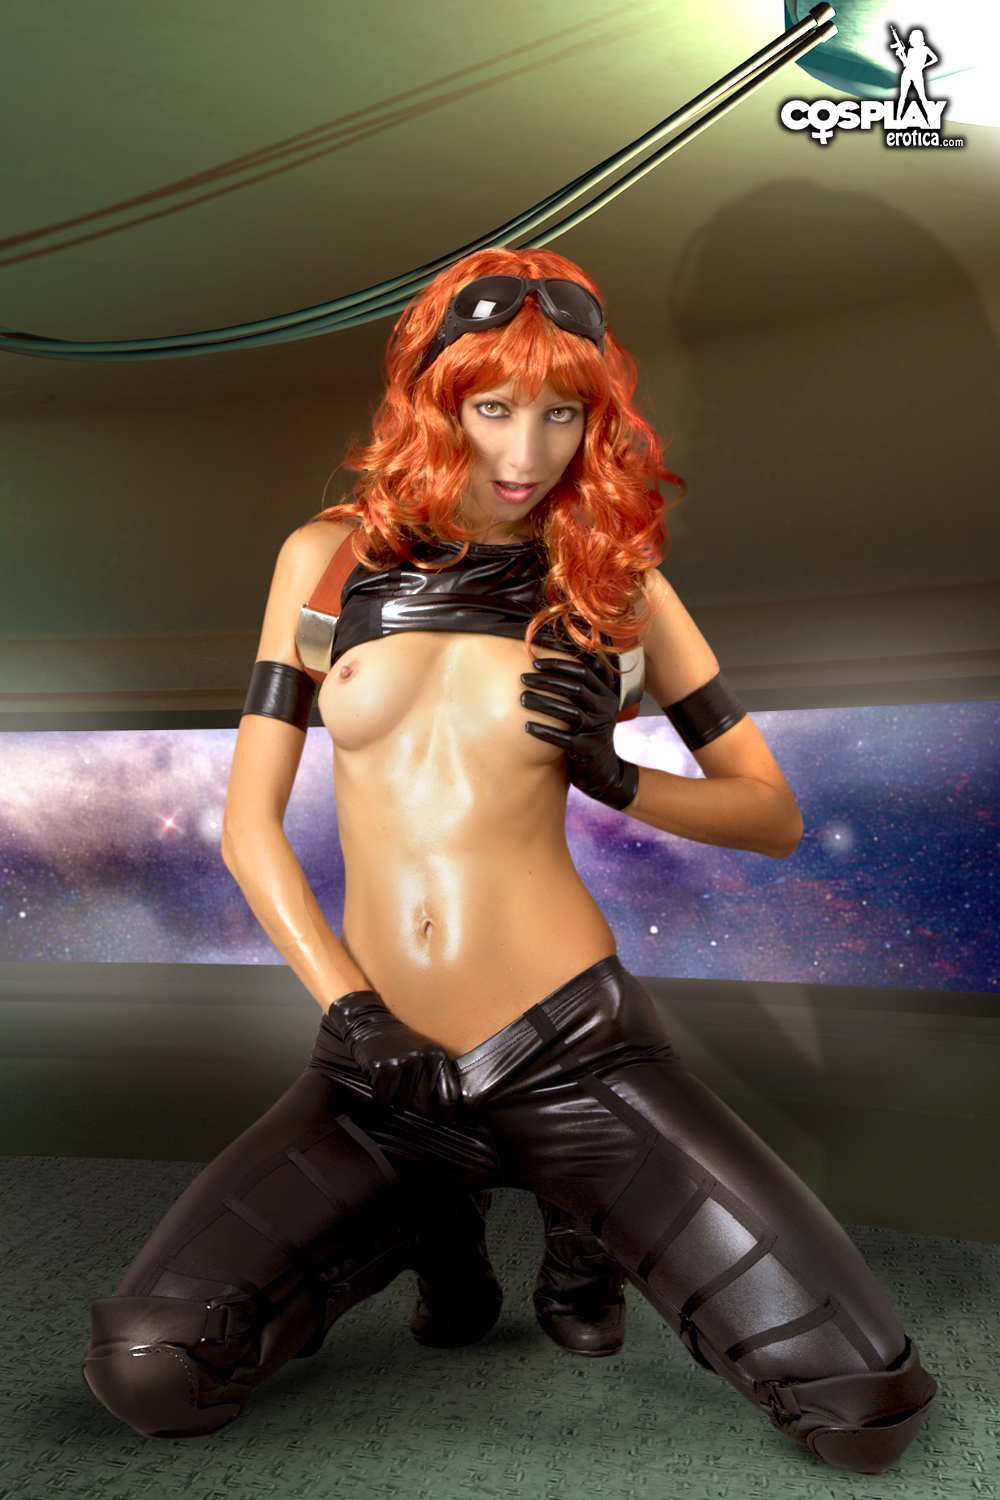 Mara elf skywalker nude xxx picture